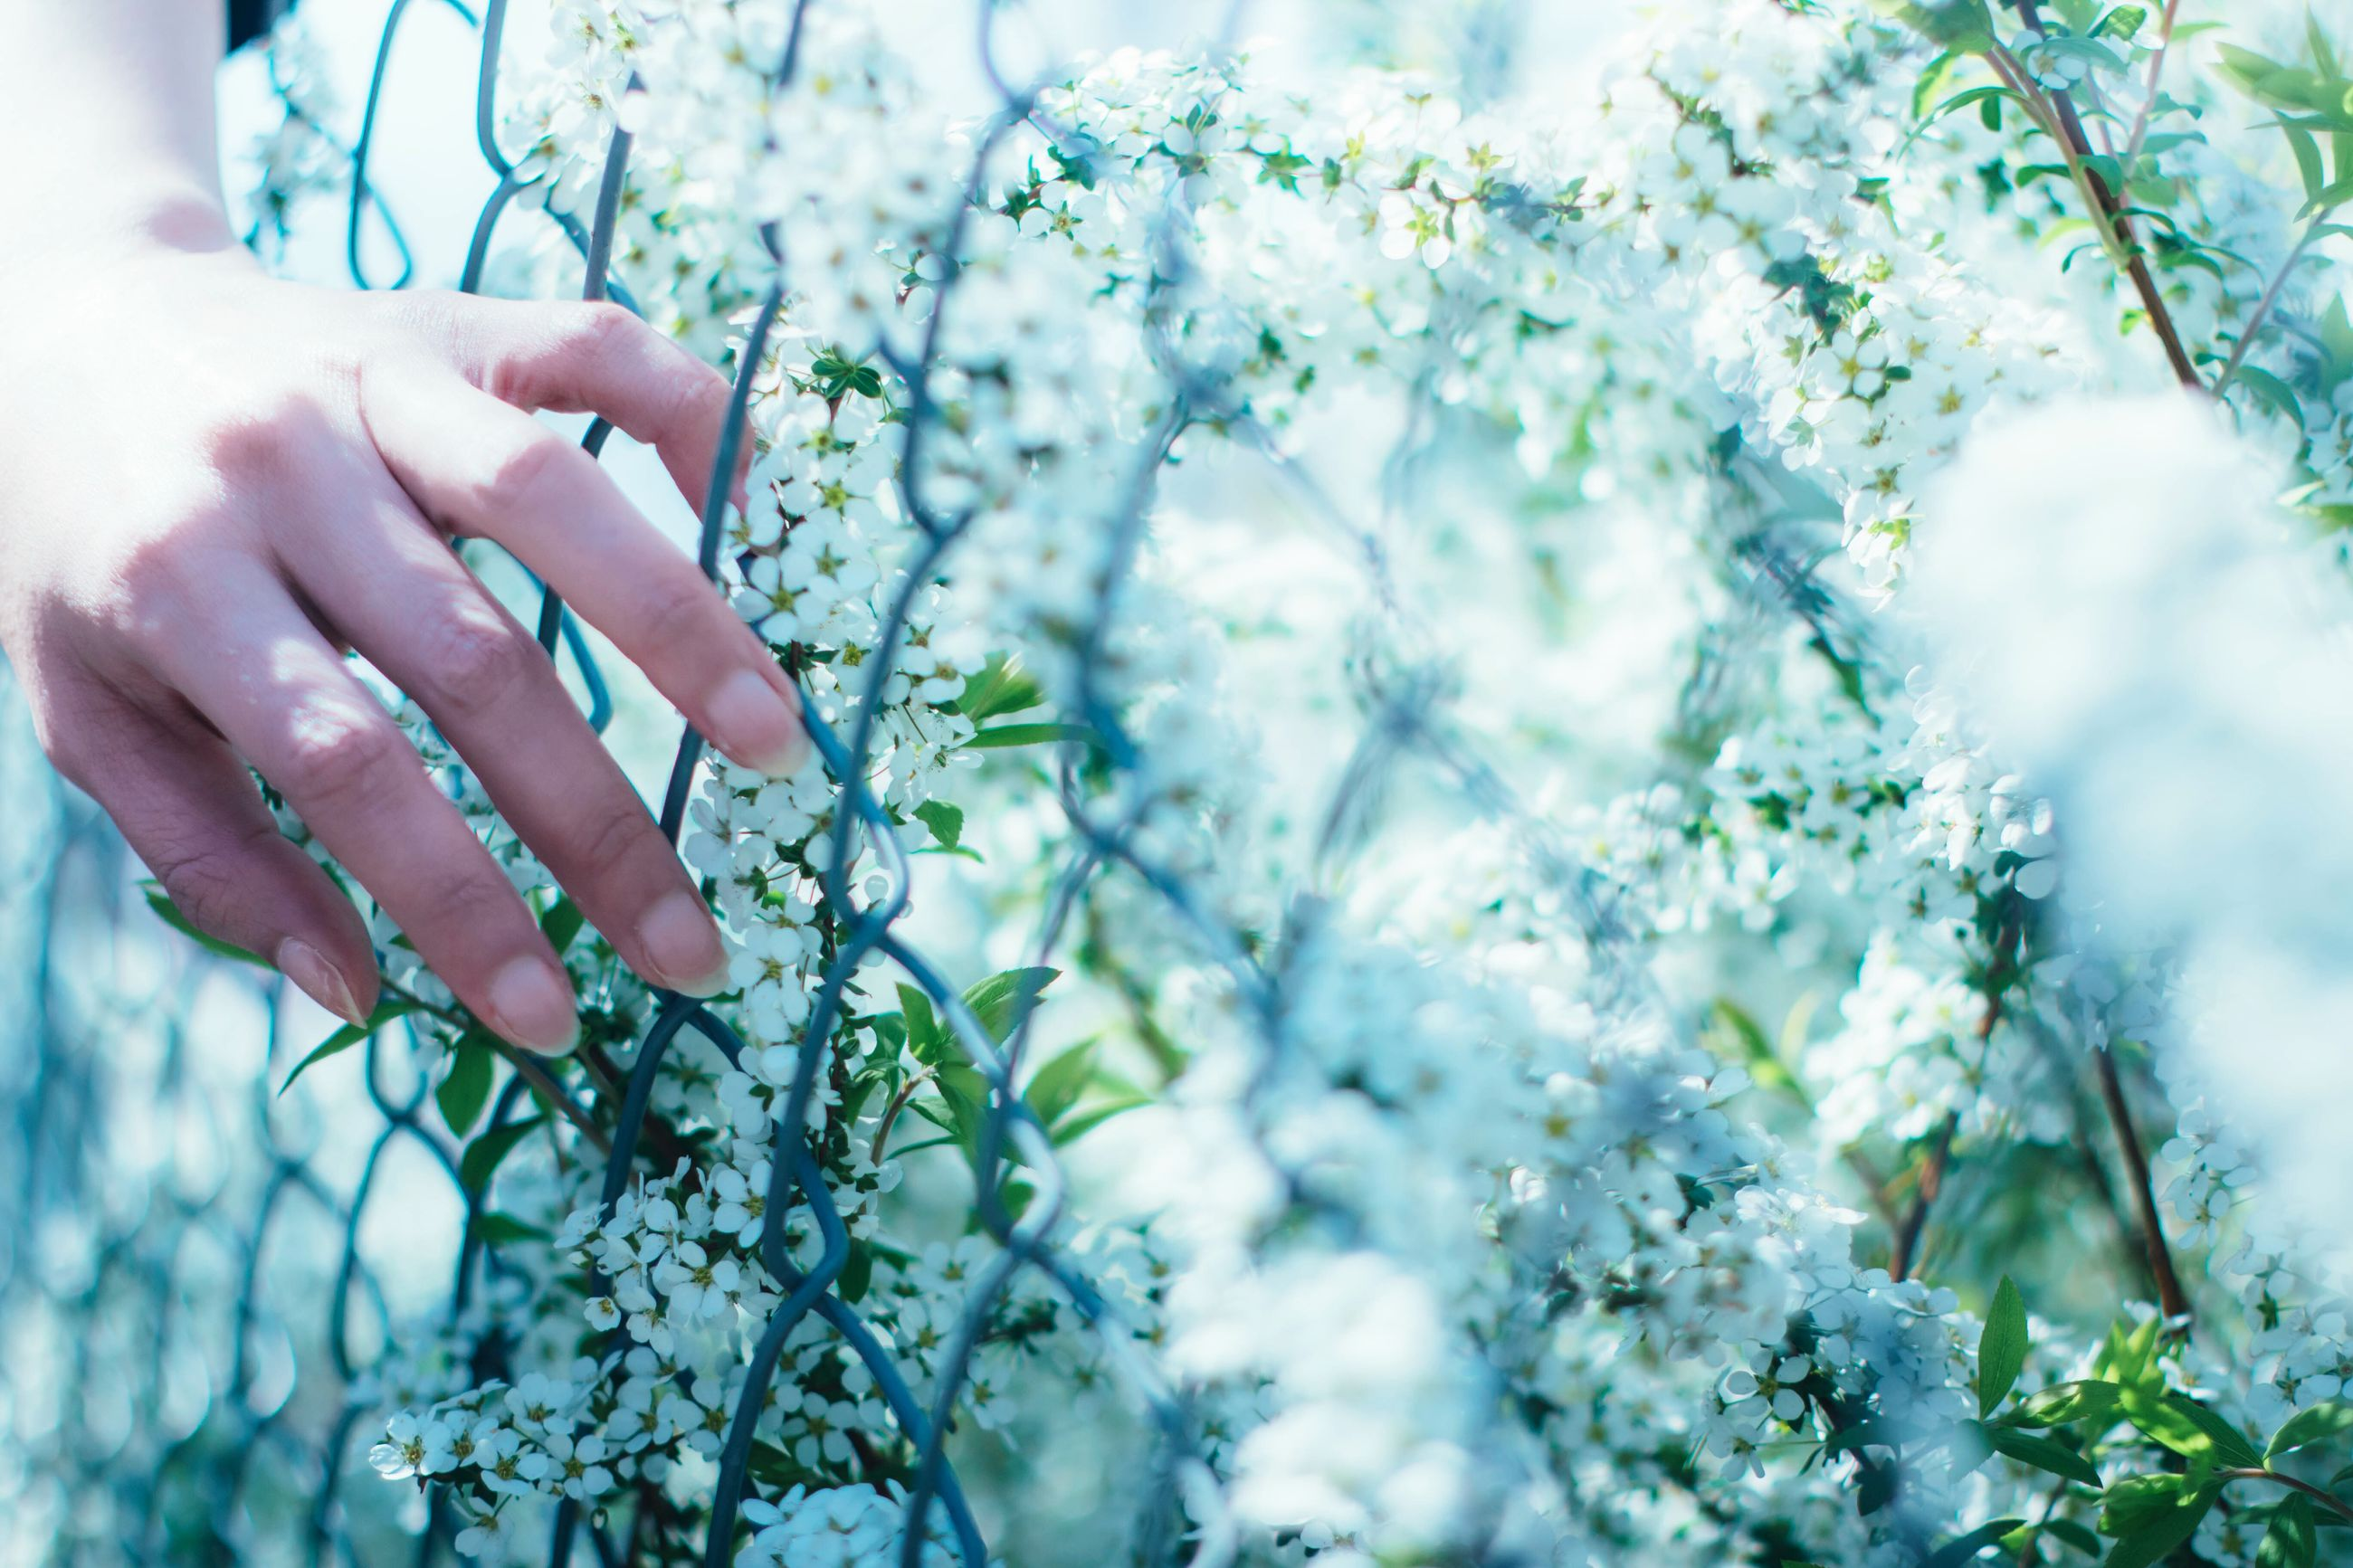 human hand, tree, human body part, leaf, outdoors, one person, growth, holding, plant, nature, day, women, close-up, branch, flower, real people, adults only, people, adult, freshness